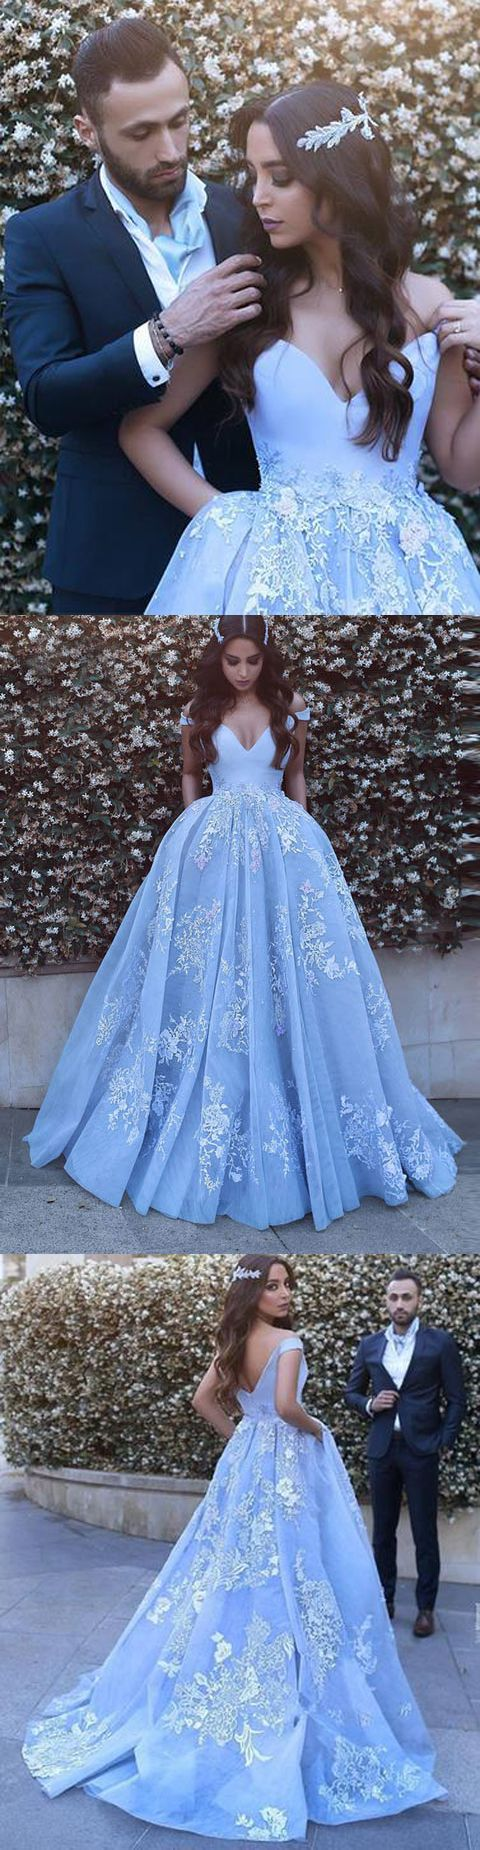 7b8a5576f04726 Light Blue Wedding Dress Princess